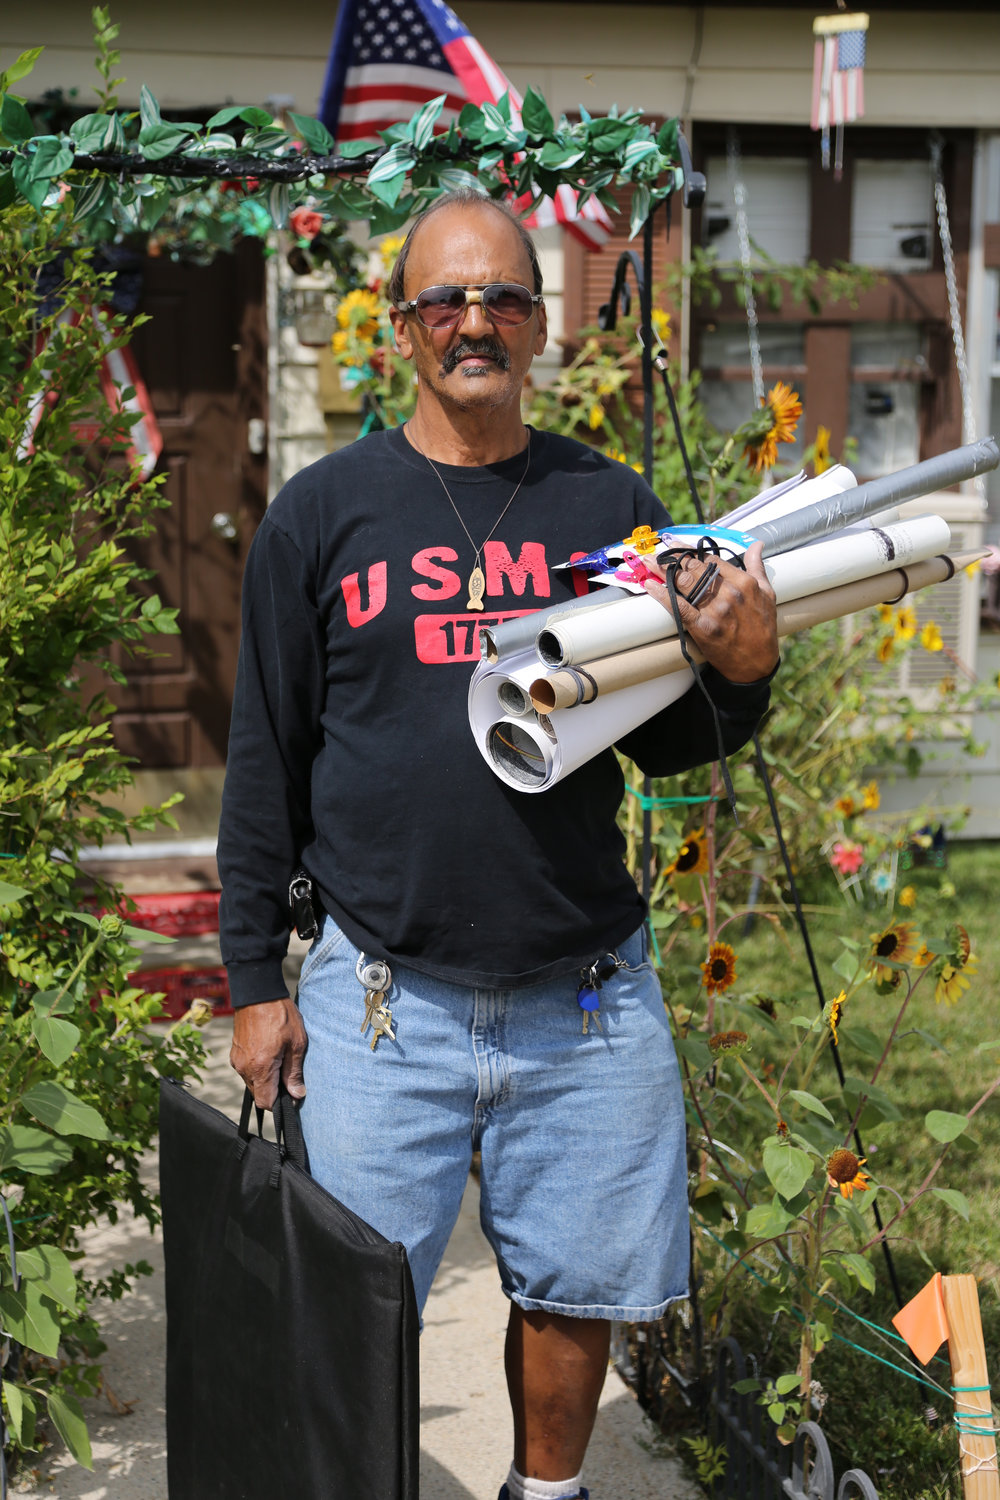 Eugene Morris outside his home in Ogden, Utah (2013).